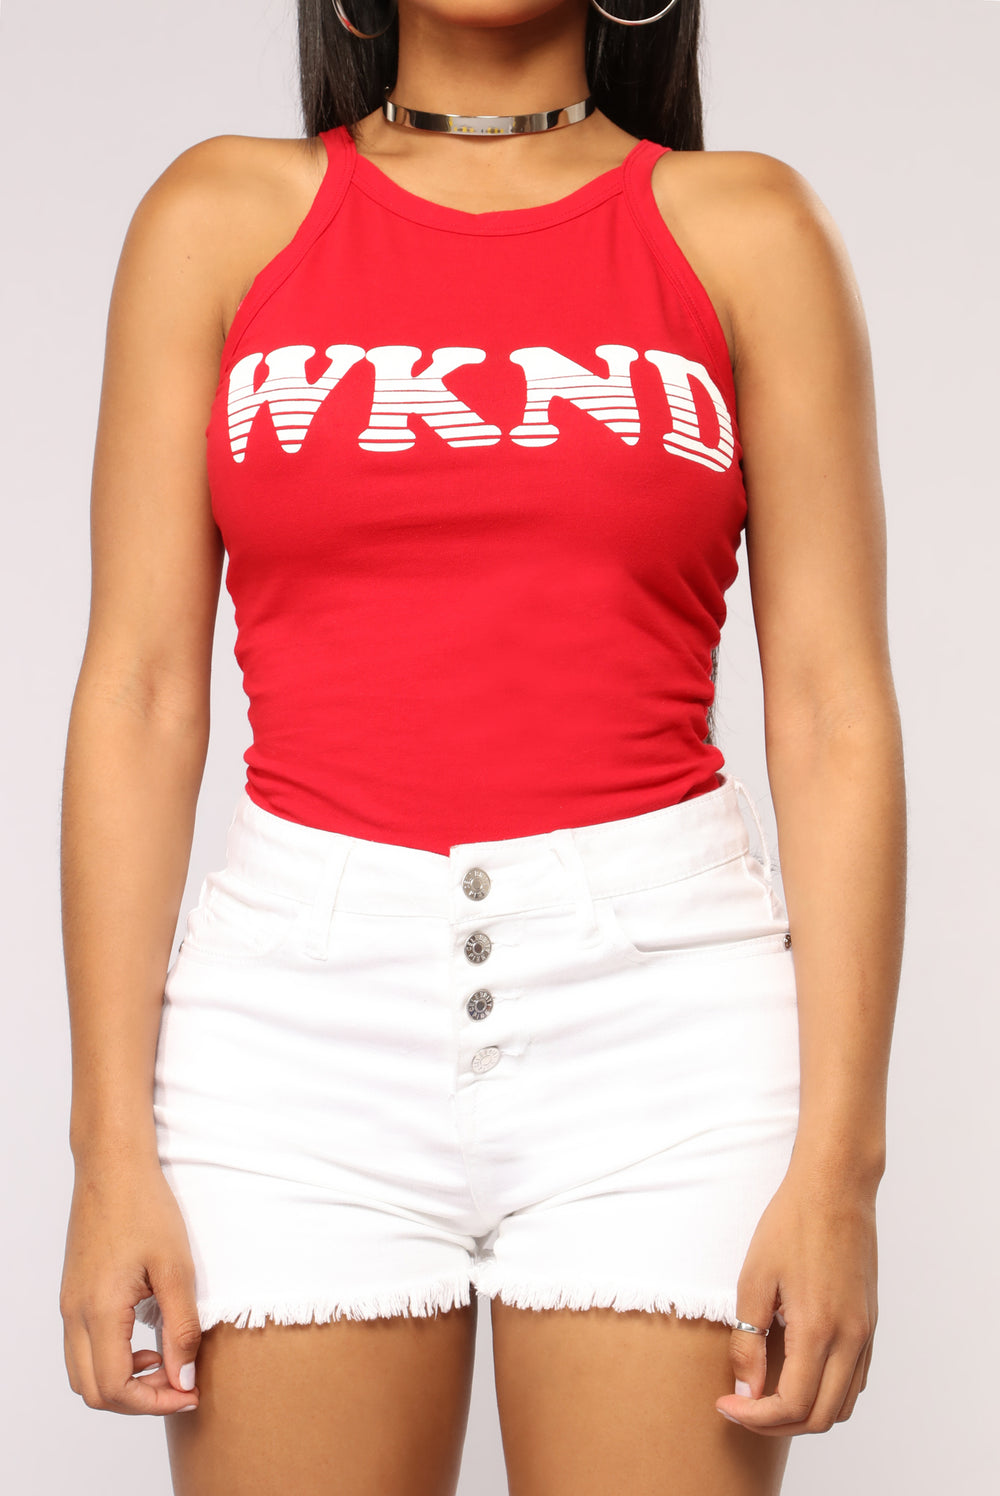 I'm The Weekend Bodysuit - Red